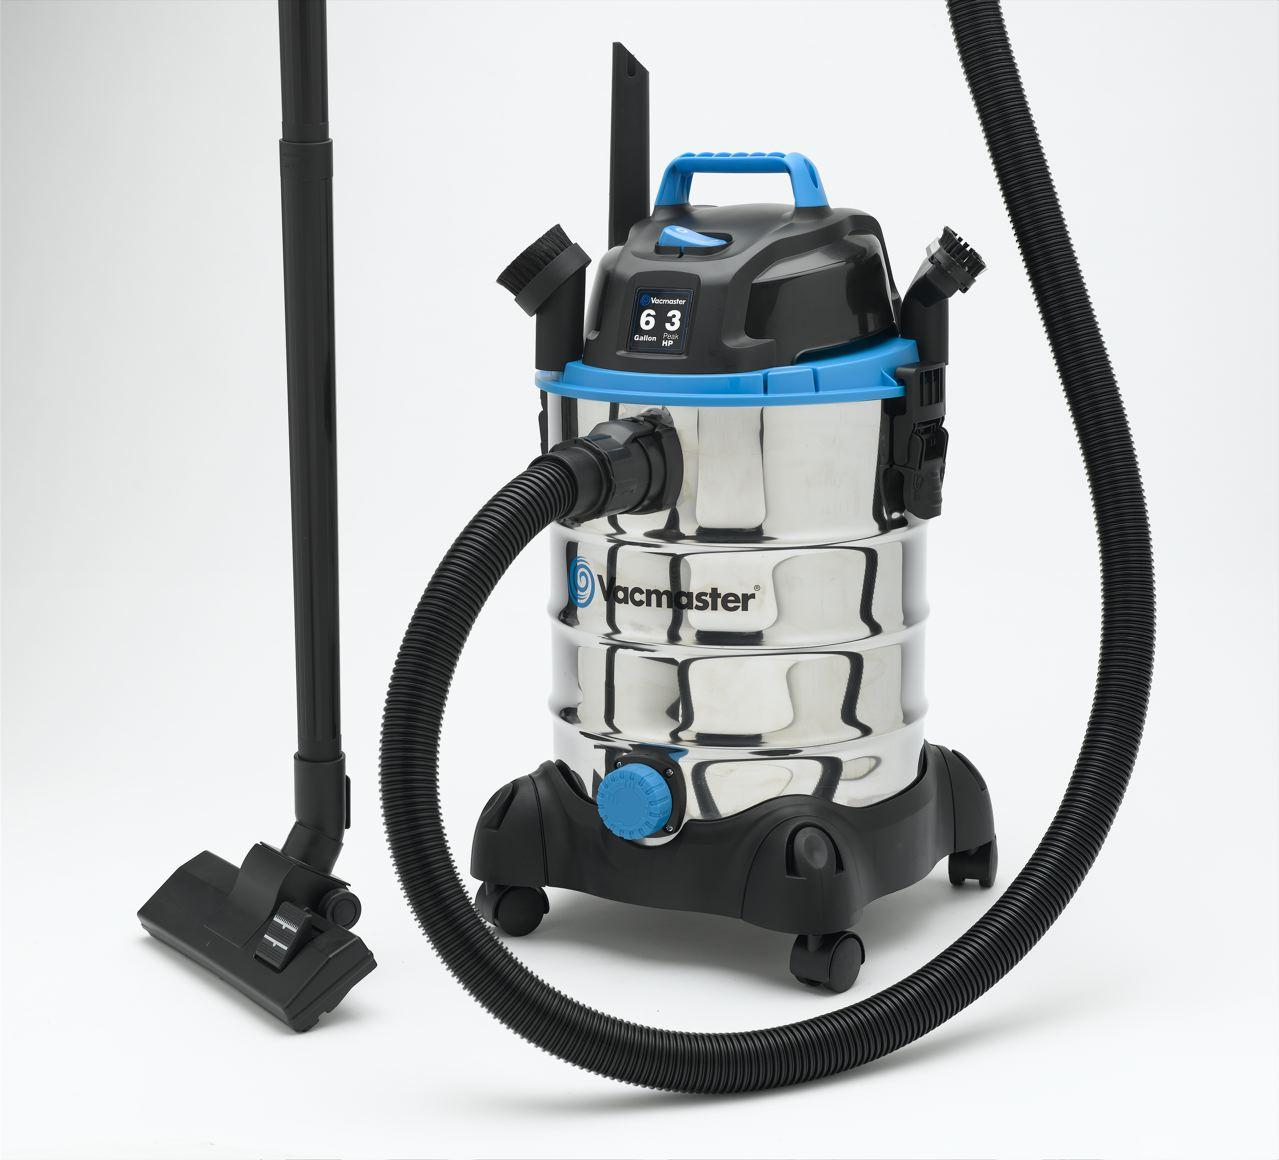 Vacmaster VQ607SFD Stainless Steel Wet/ Dry Vacuum at Sears.com